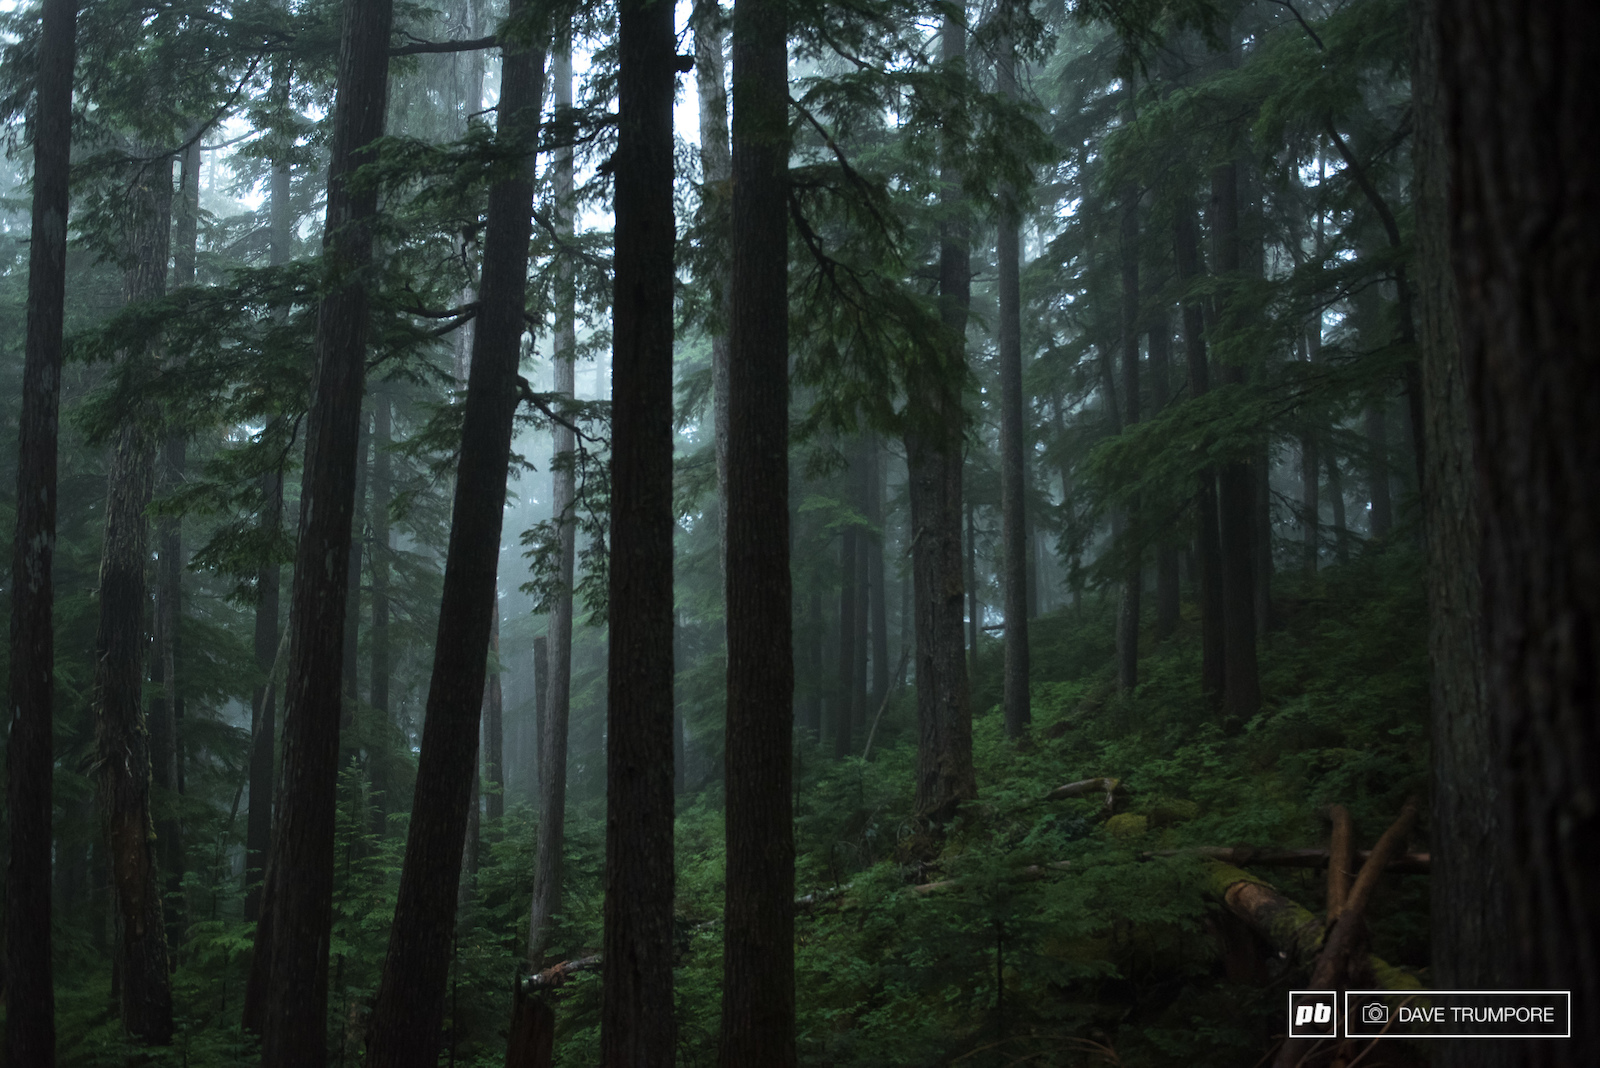 It was classic Whistler scenery in the woods for the first stage of the day.